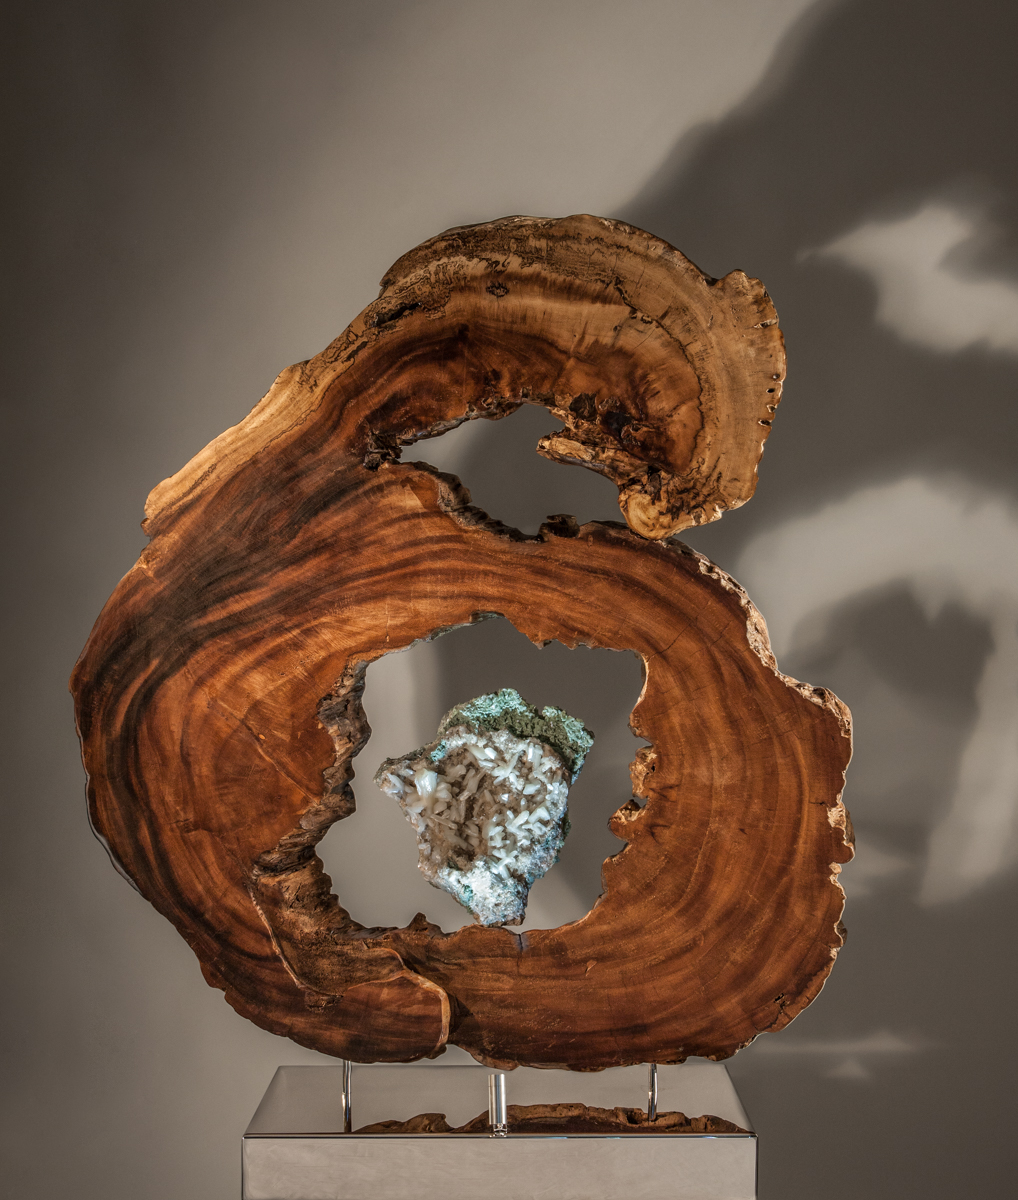 Spirit Guides - Crystal & Wood Sculpture by Fine Artist Dorit Schwartz